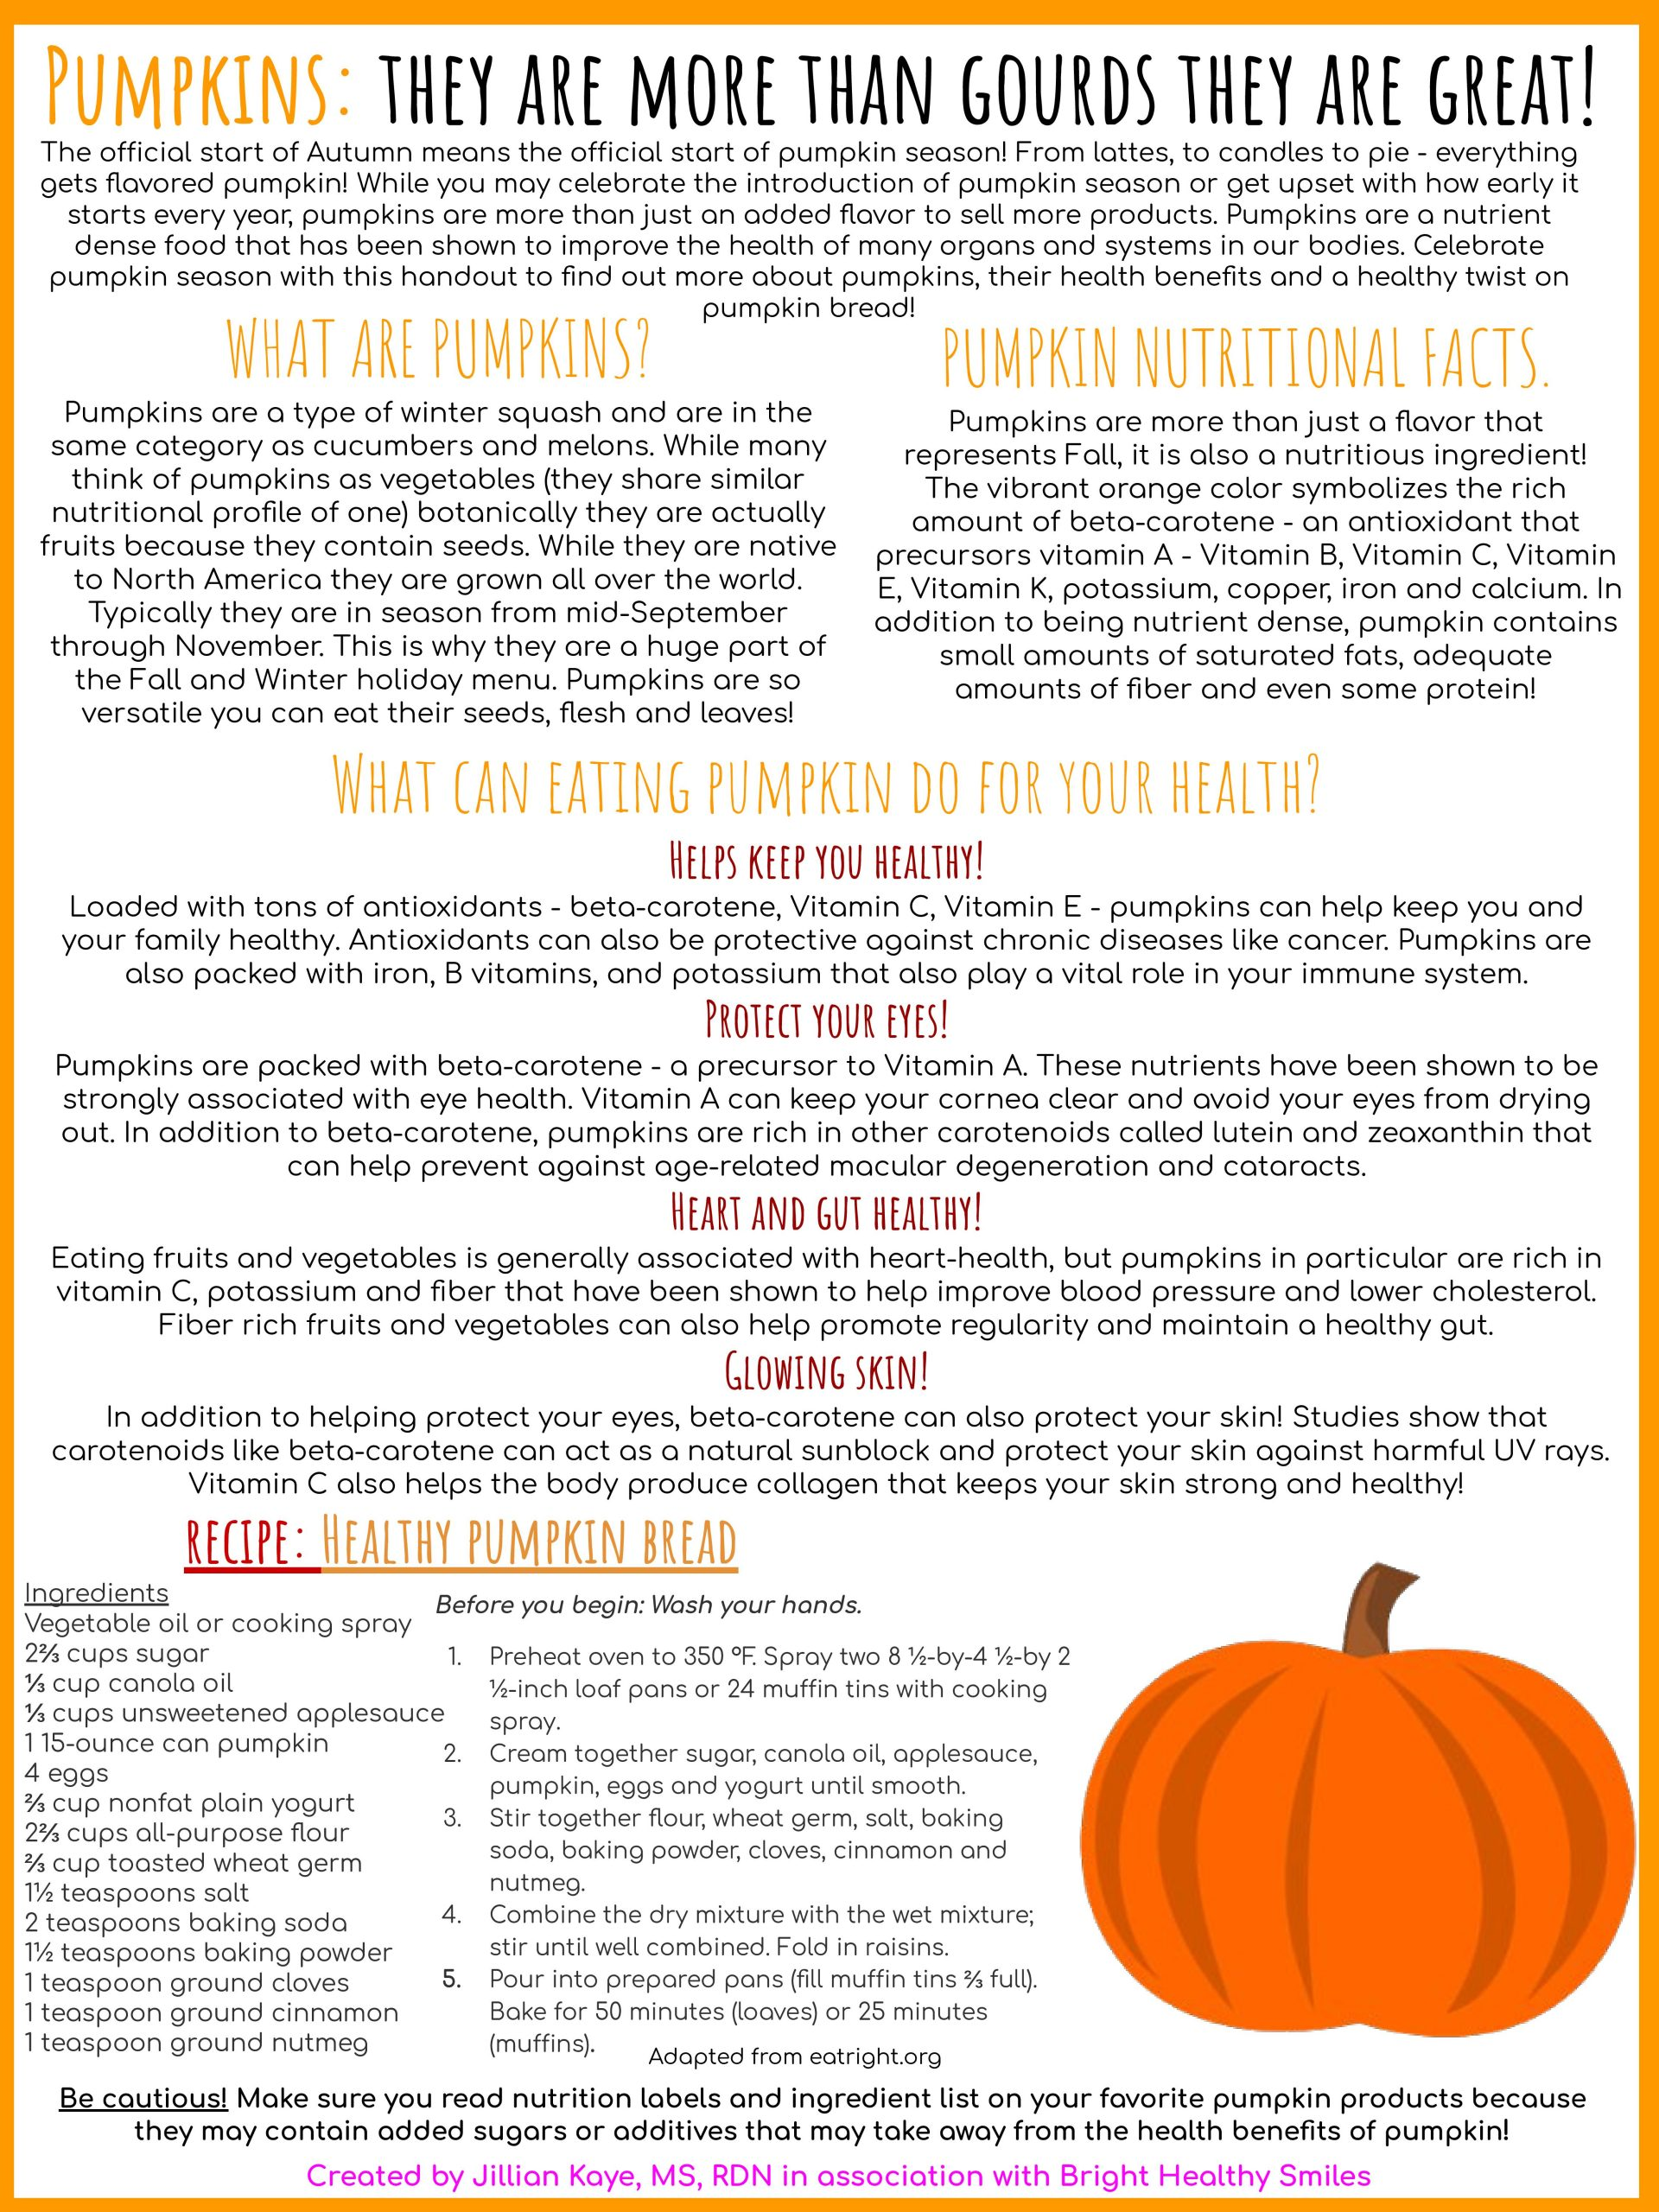 Pumpkins: They are more than gourds they are great!